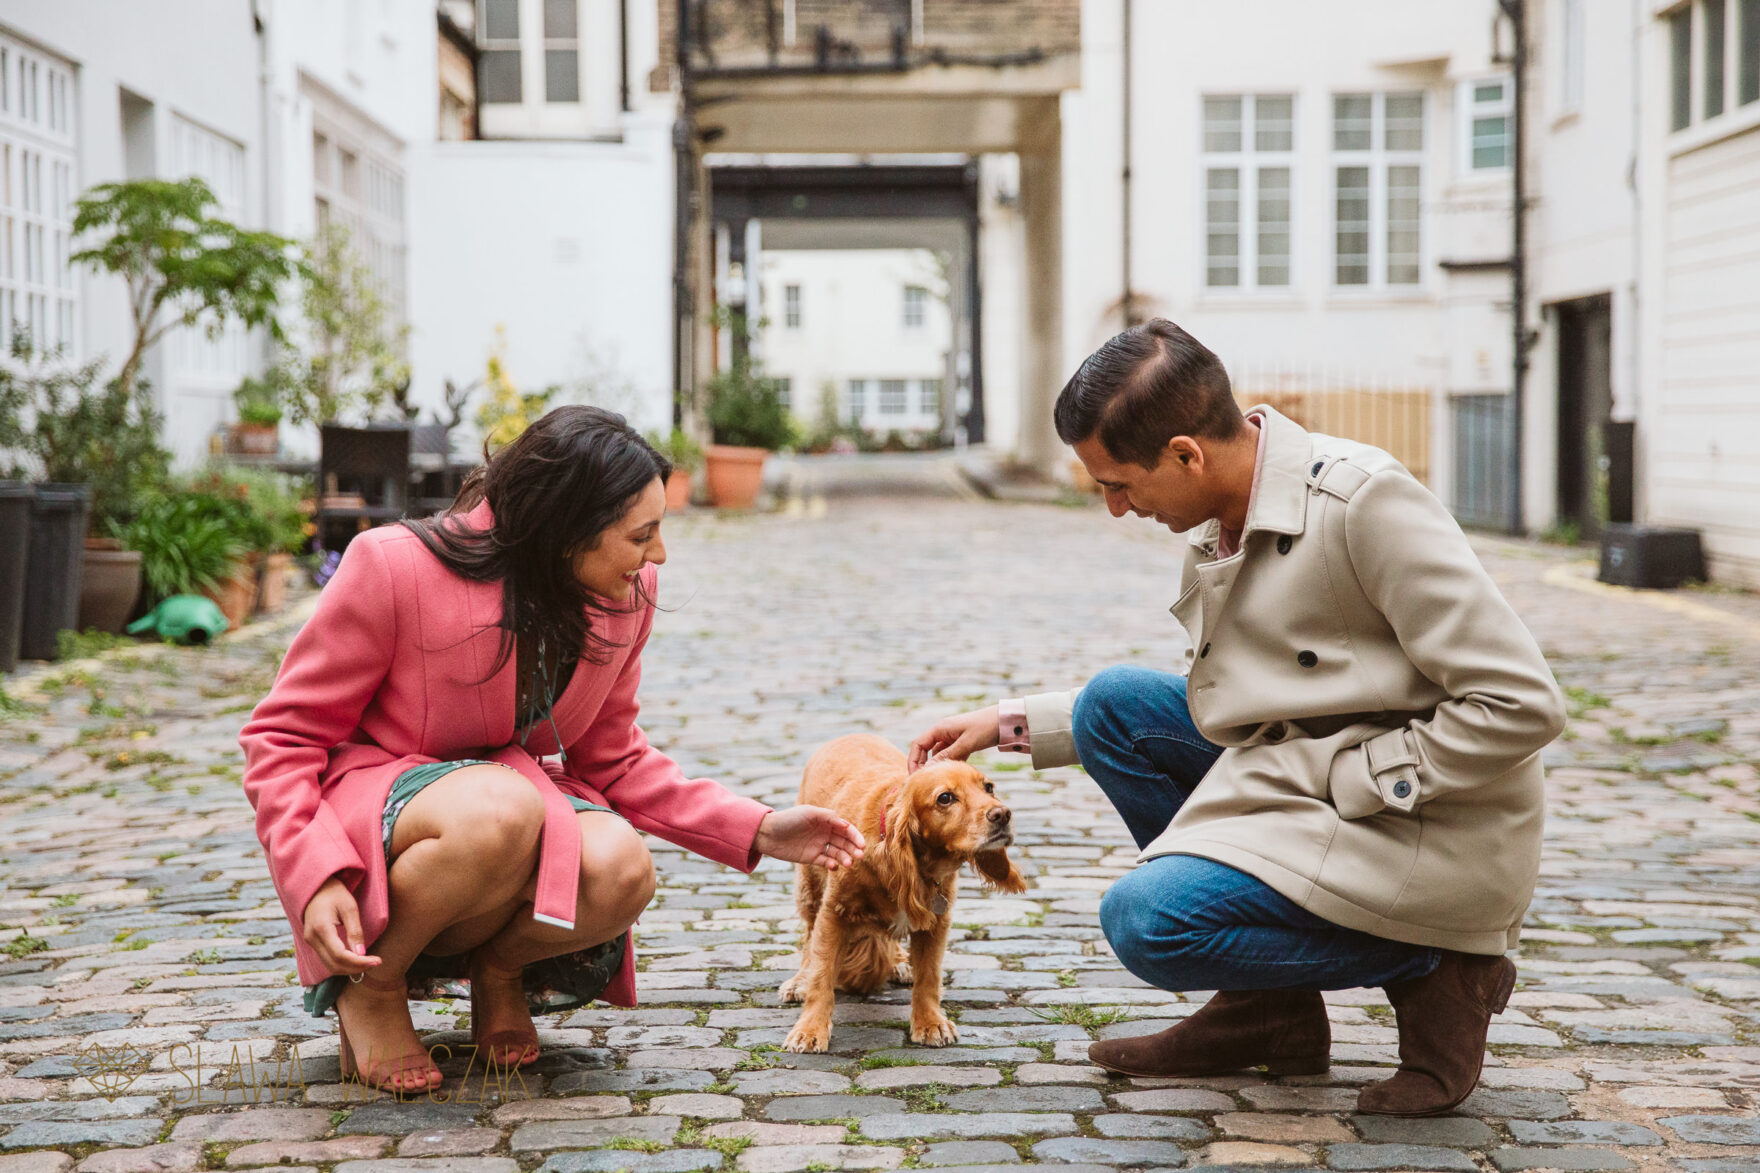 natural pre wedding photos from Paddington Mews in London